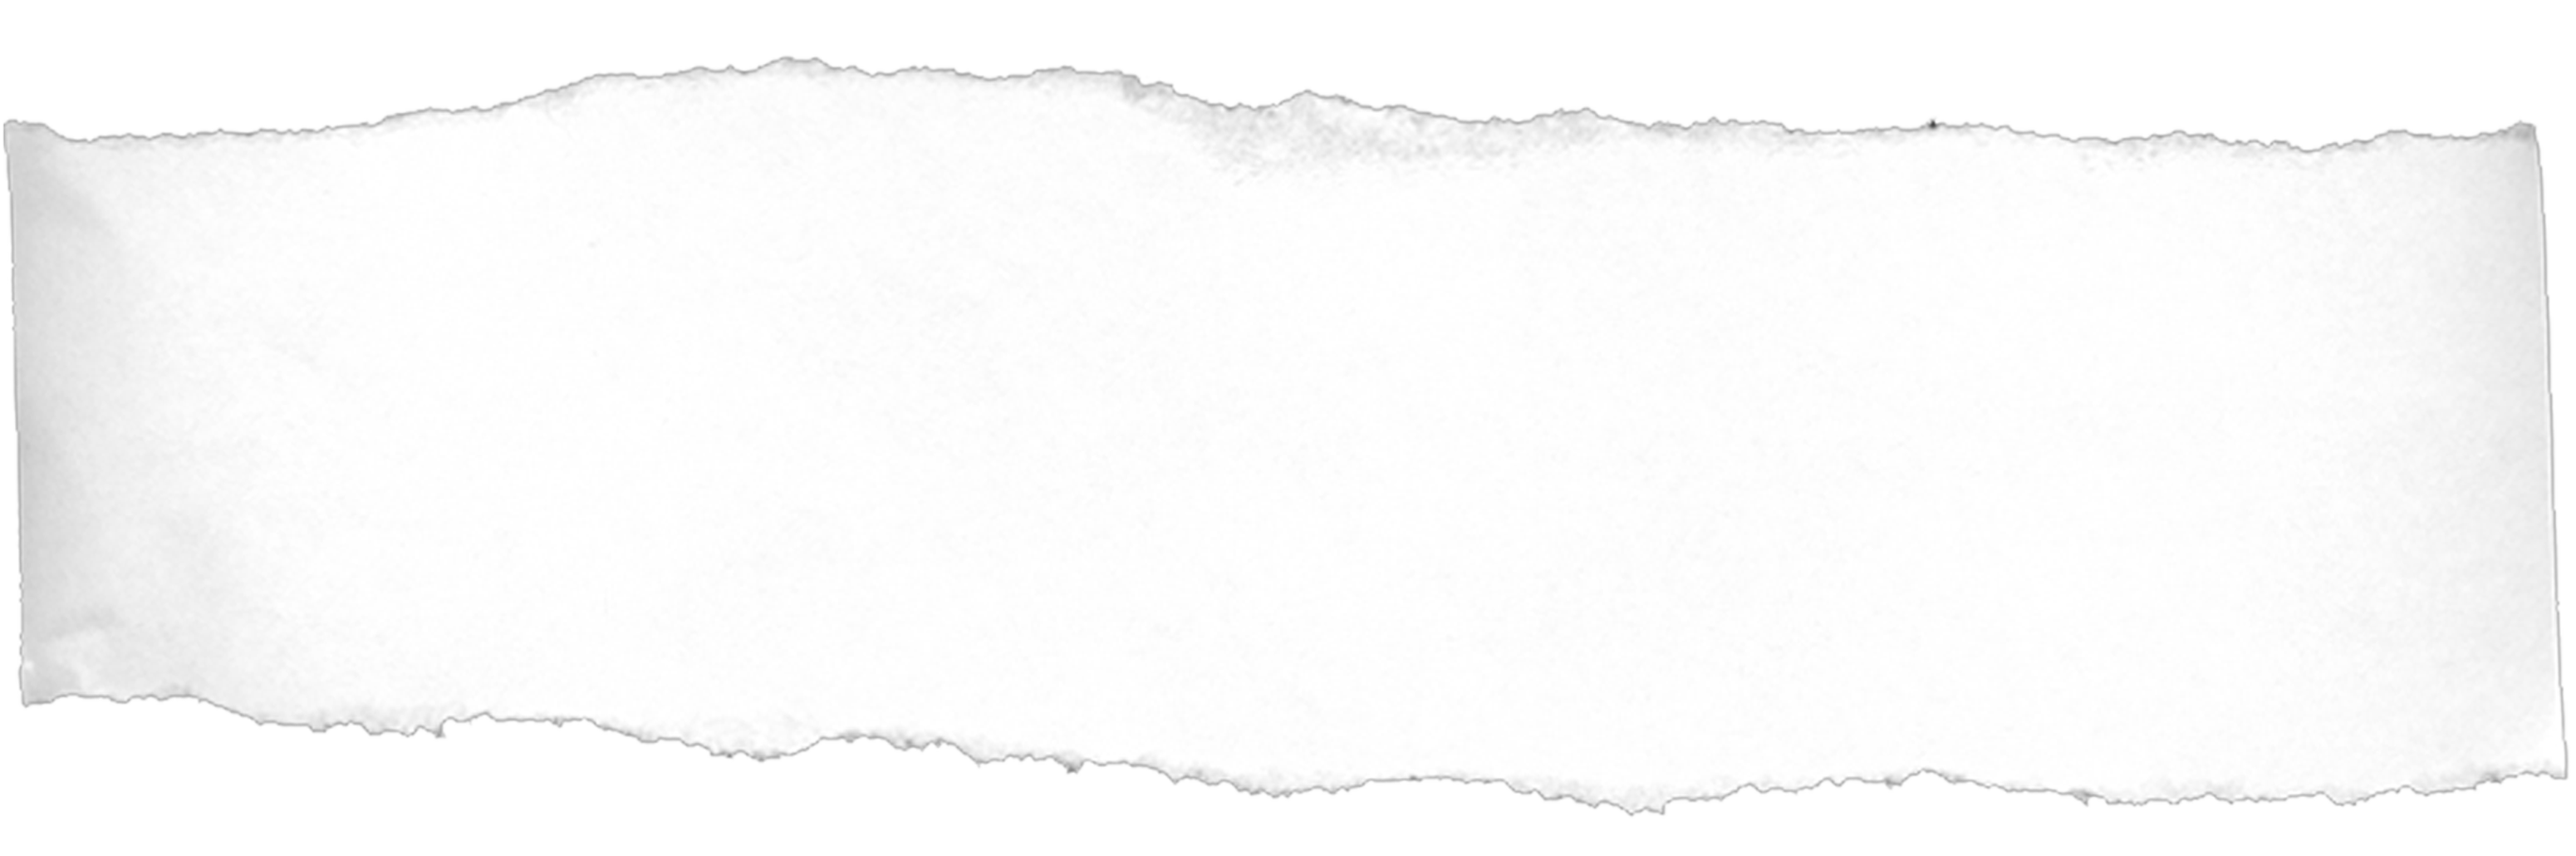 Paper rip clipart jpg black and white Paper rip png clipart images gallery for free download ... jpg black and white